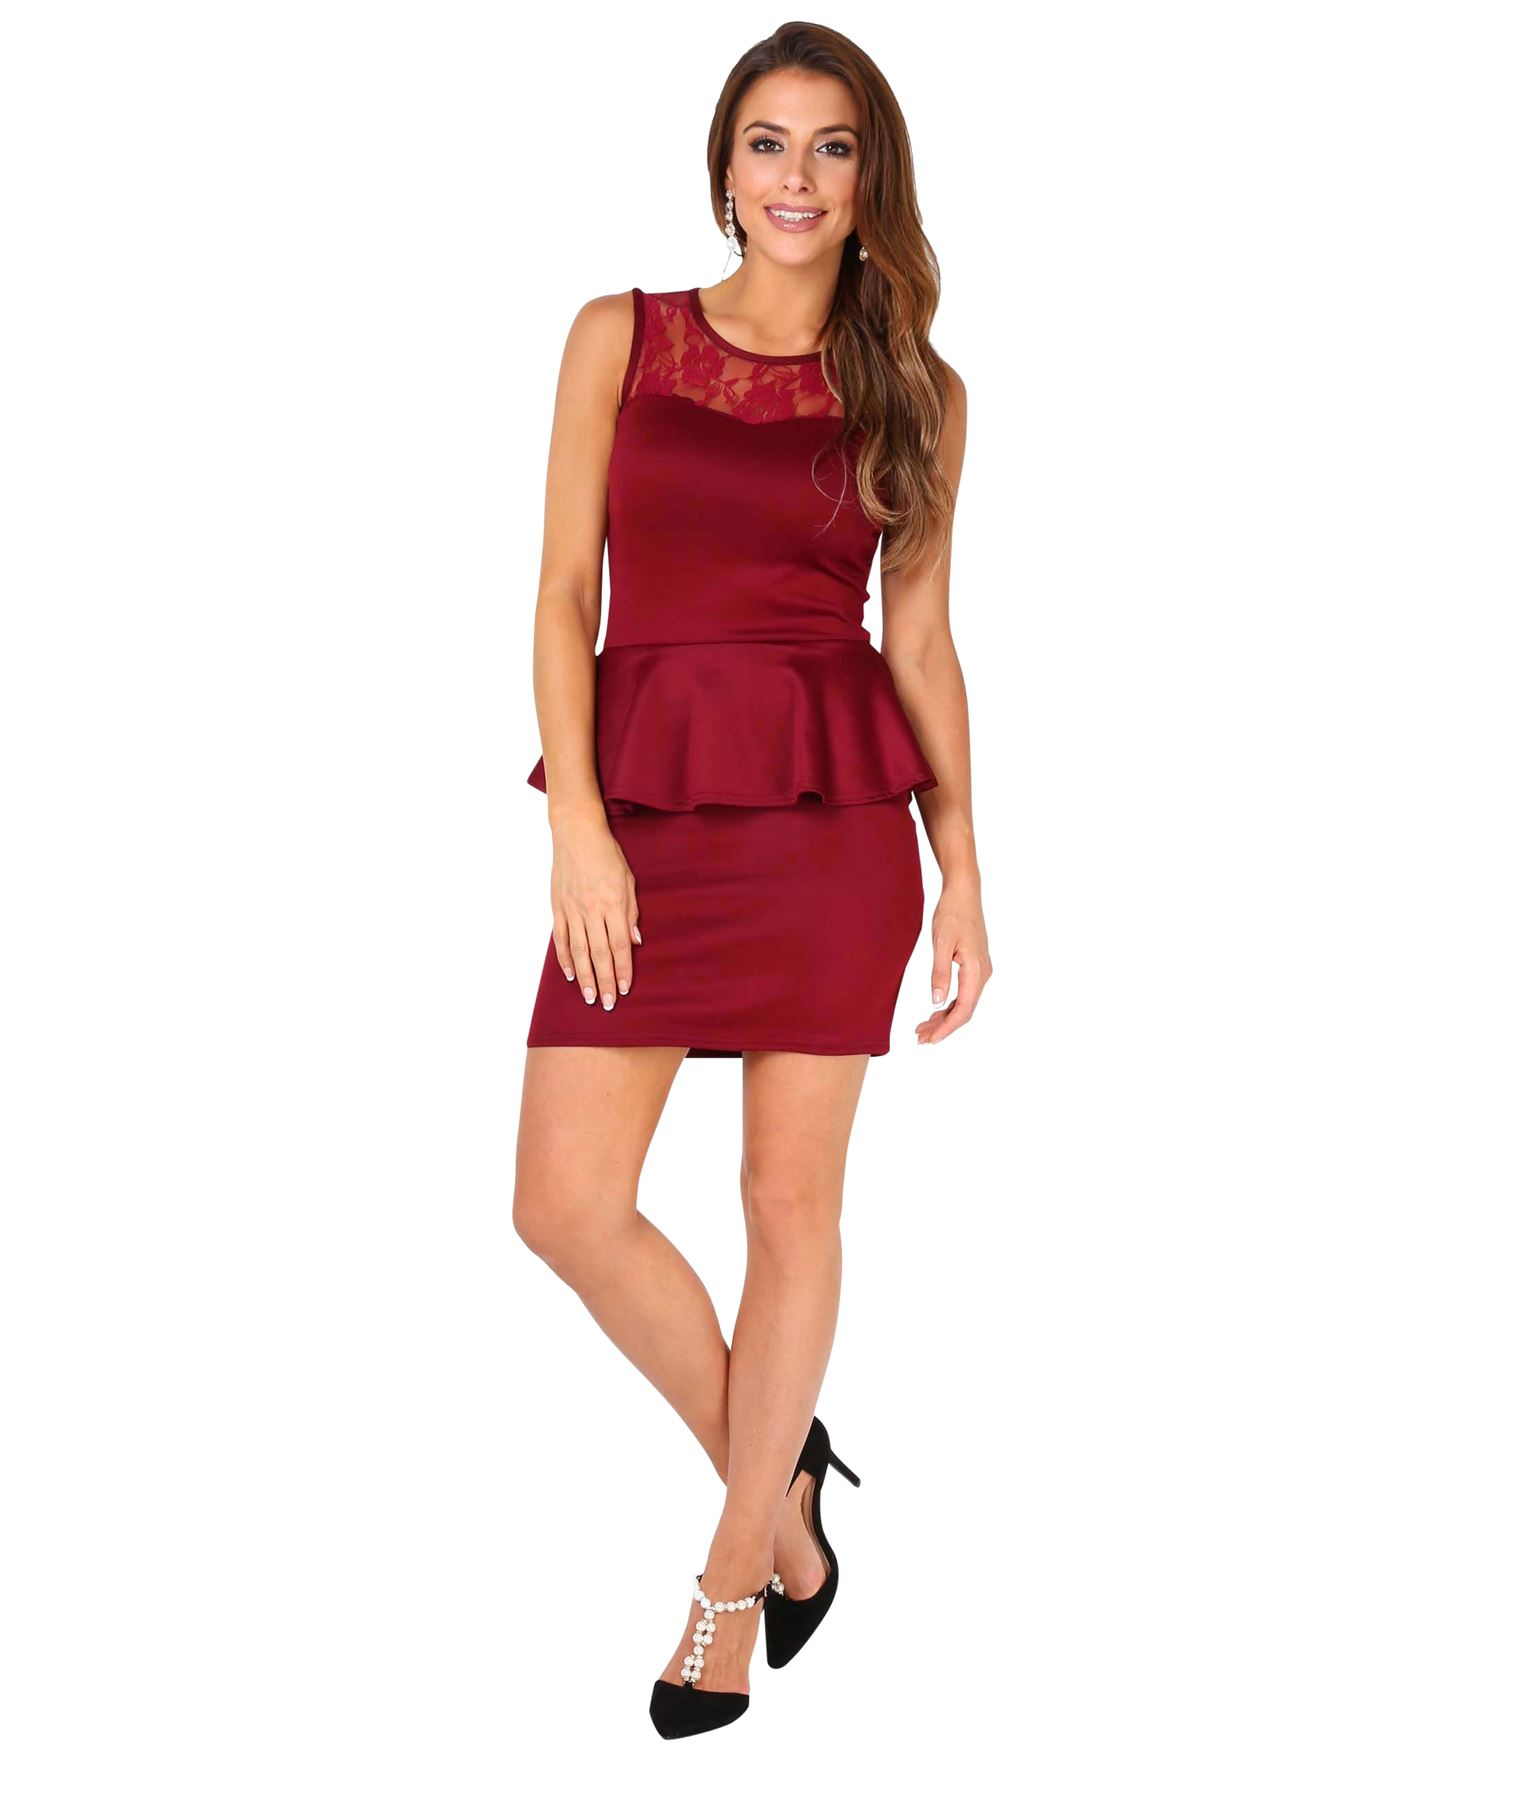 Womens-Ladies-Pencil-Lace-Dress-Mini-Midi-Skirt-Bodycon-Stretch-Frill-Party thumbnail 36